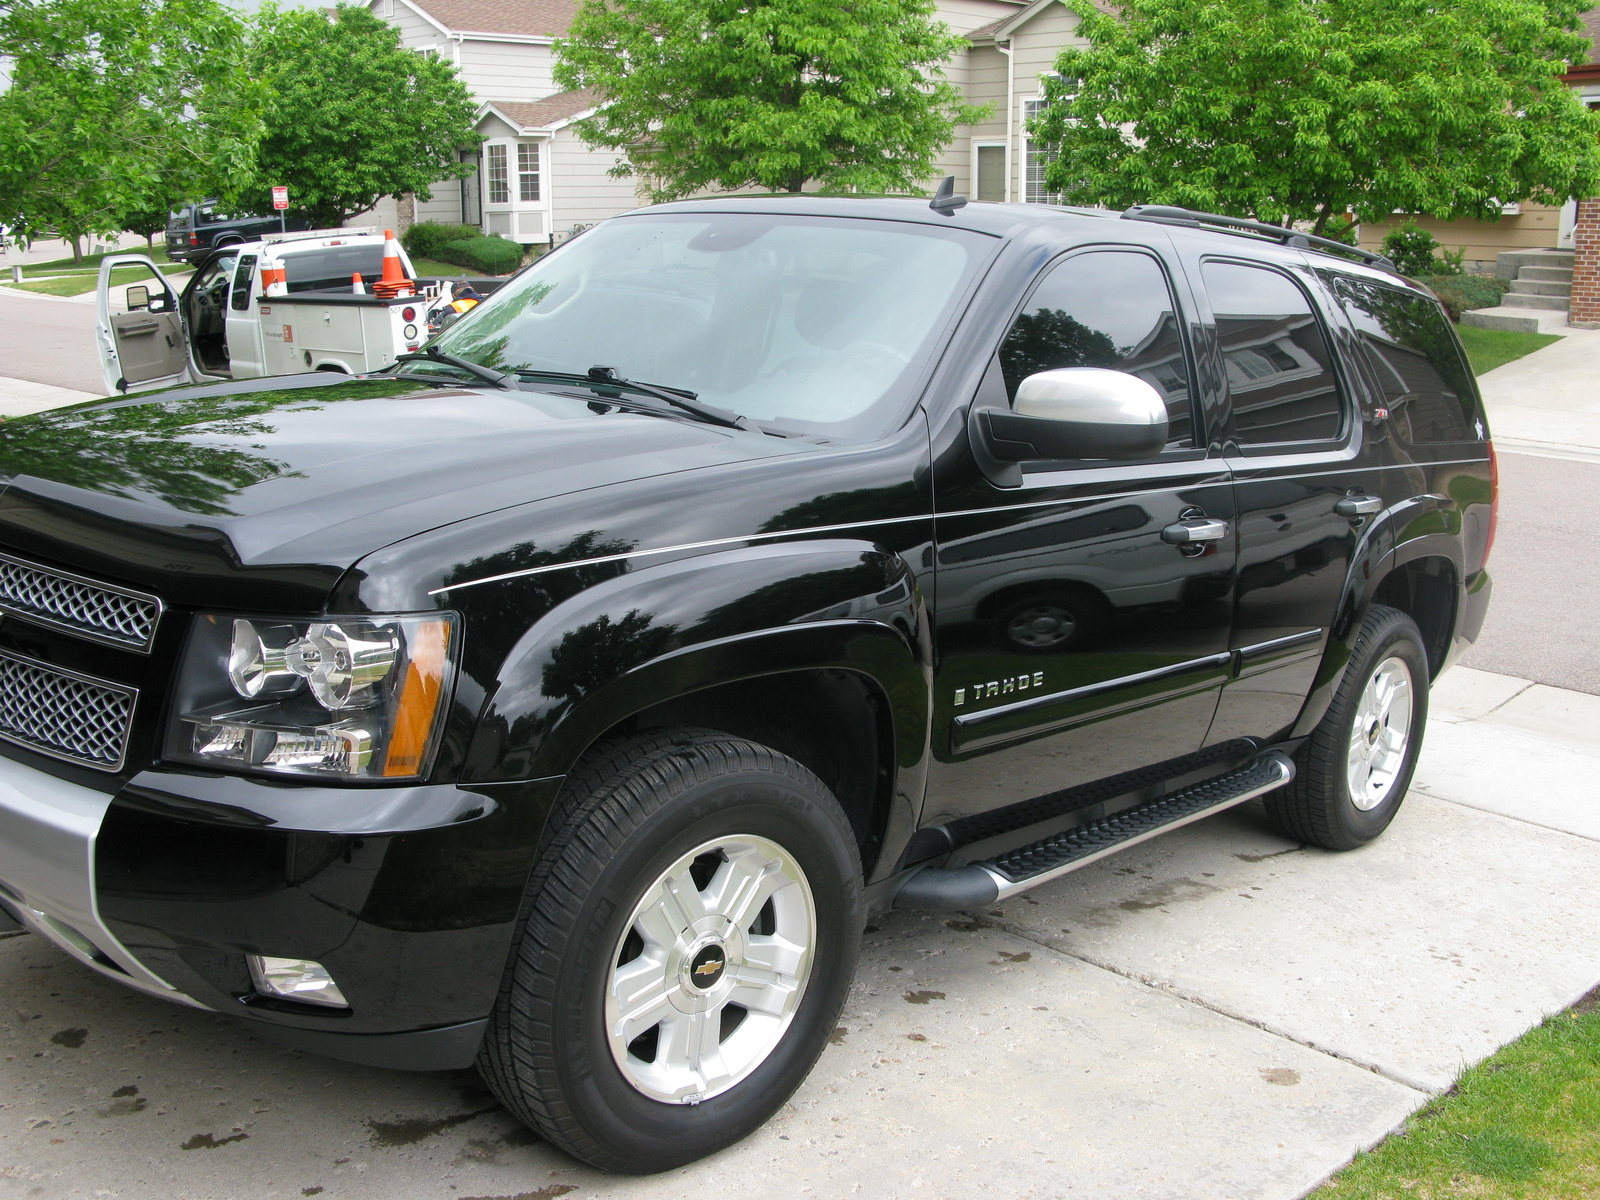 2008 chevrolet tahoe pictures cargurus. Black Bedroom Furniture Sets. Home Design Ideas